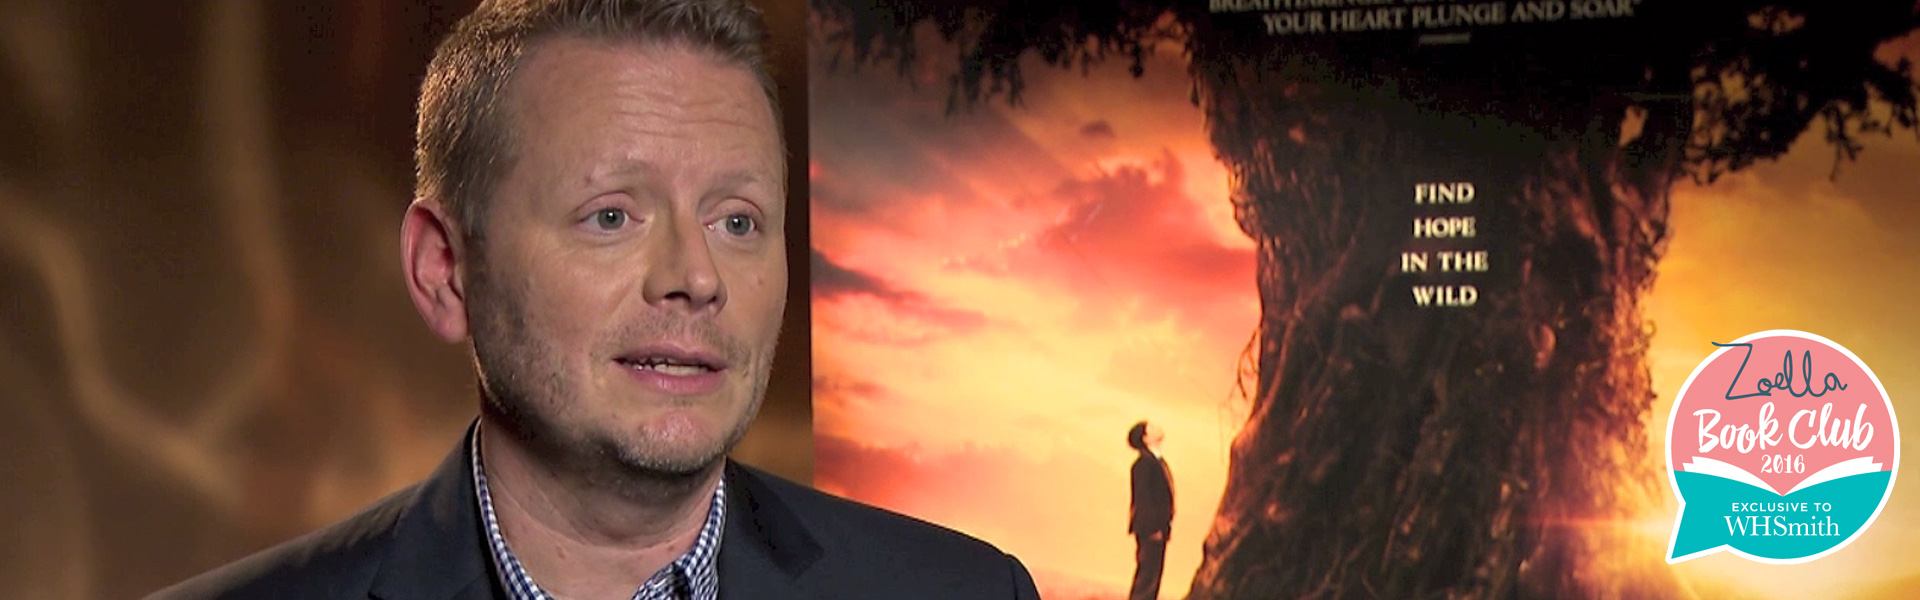 Exclusive Video! Quickfire Questions with Patrick Ness